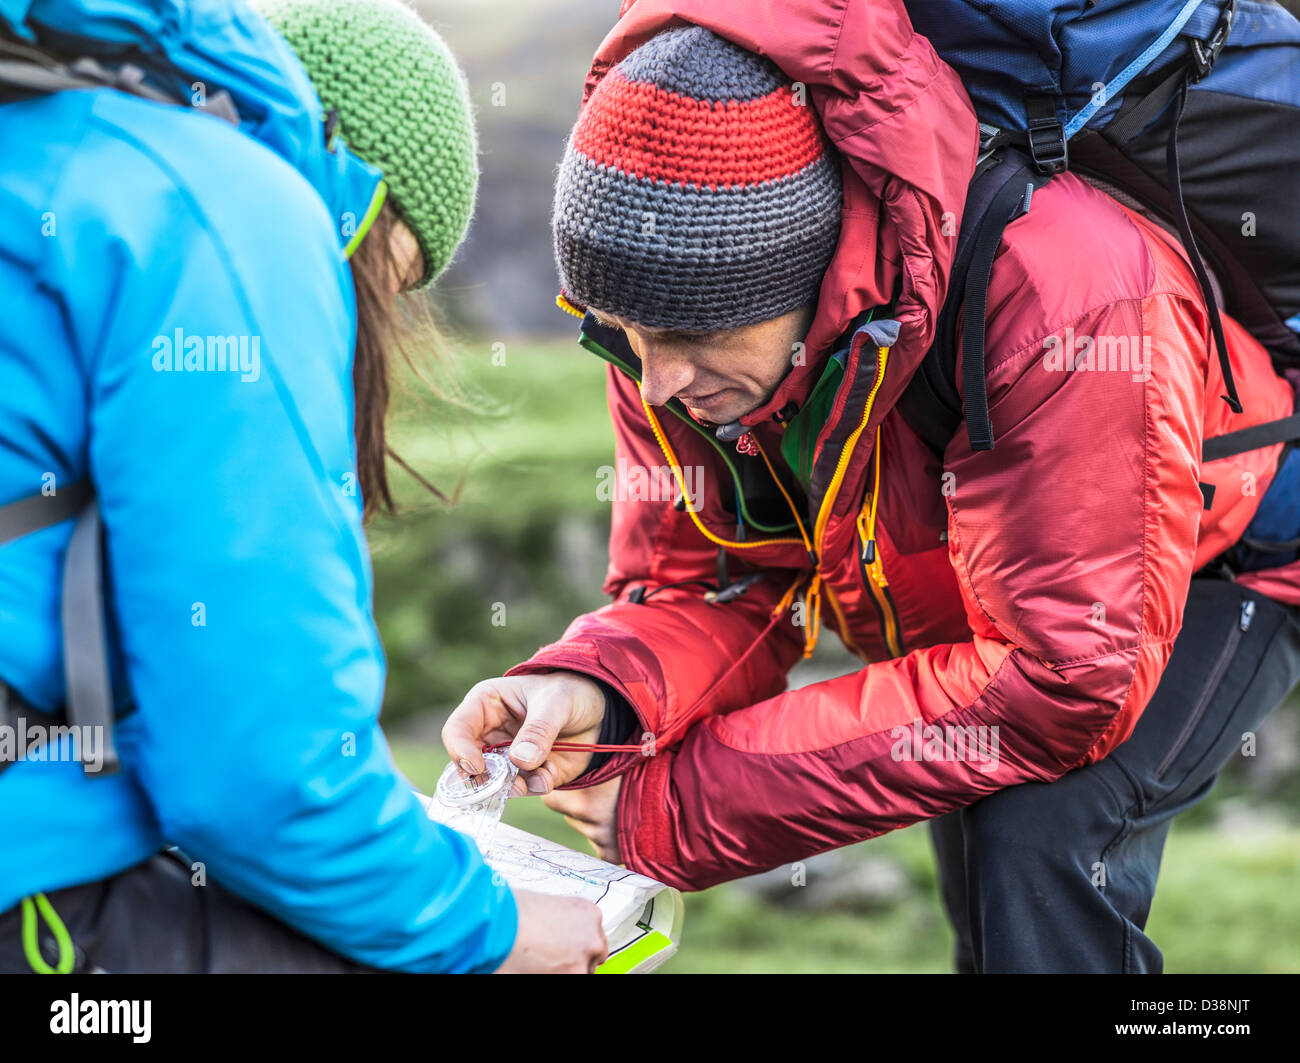 Hikers using map and compass - Stock Image